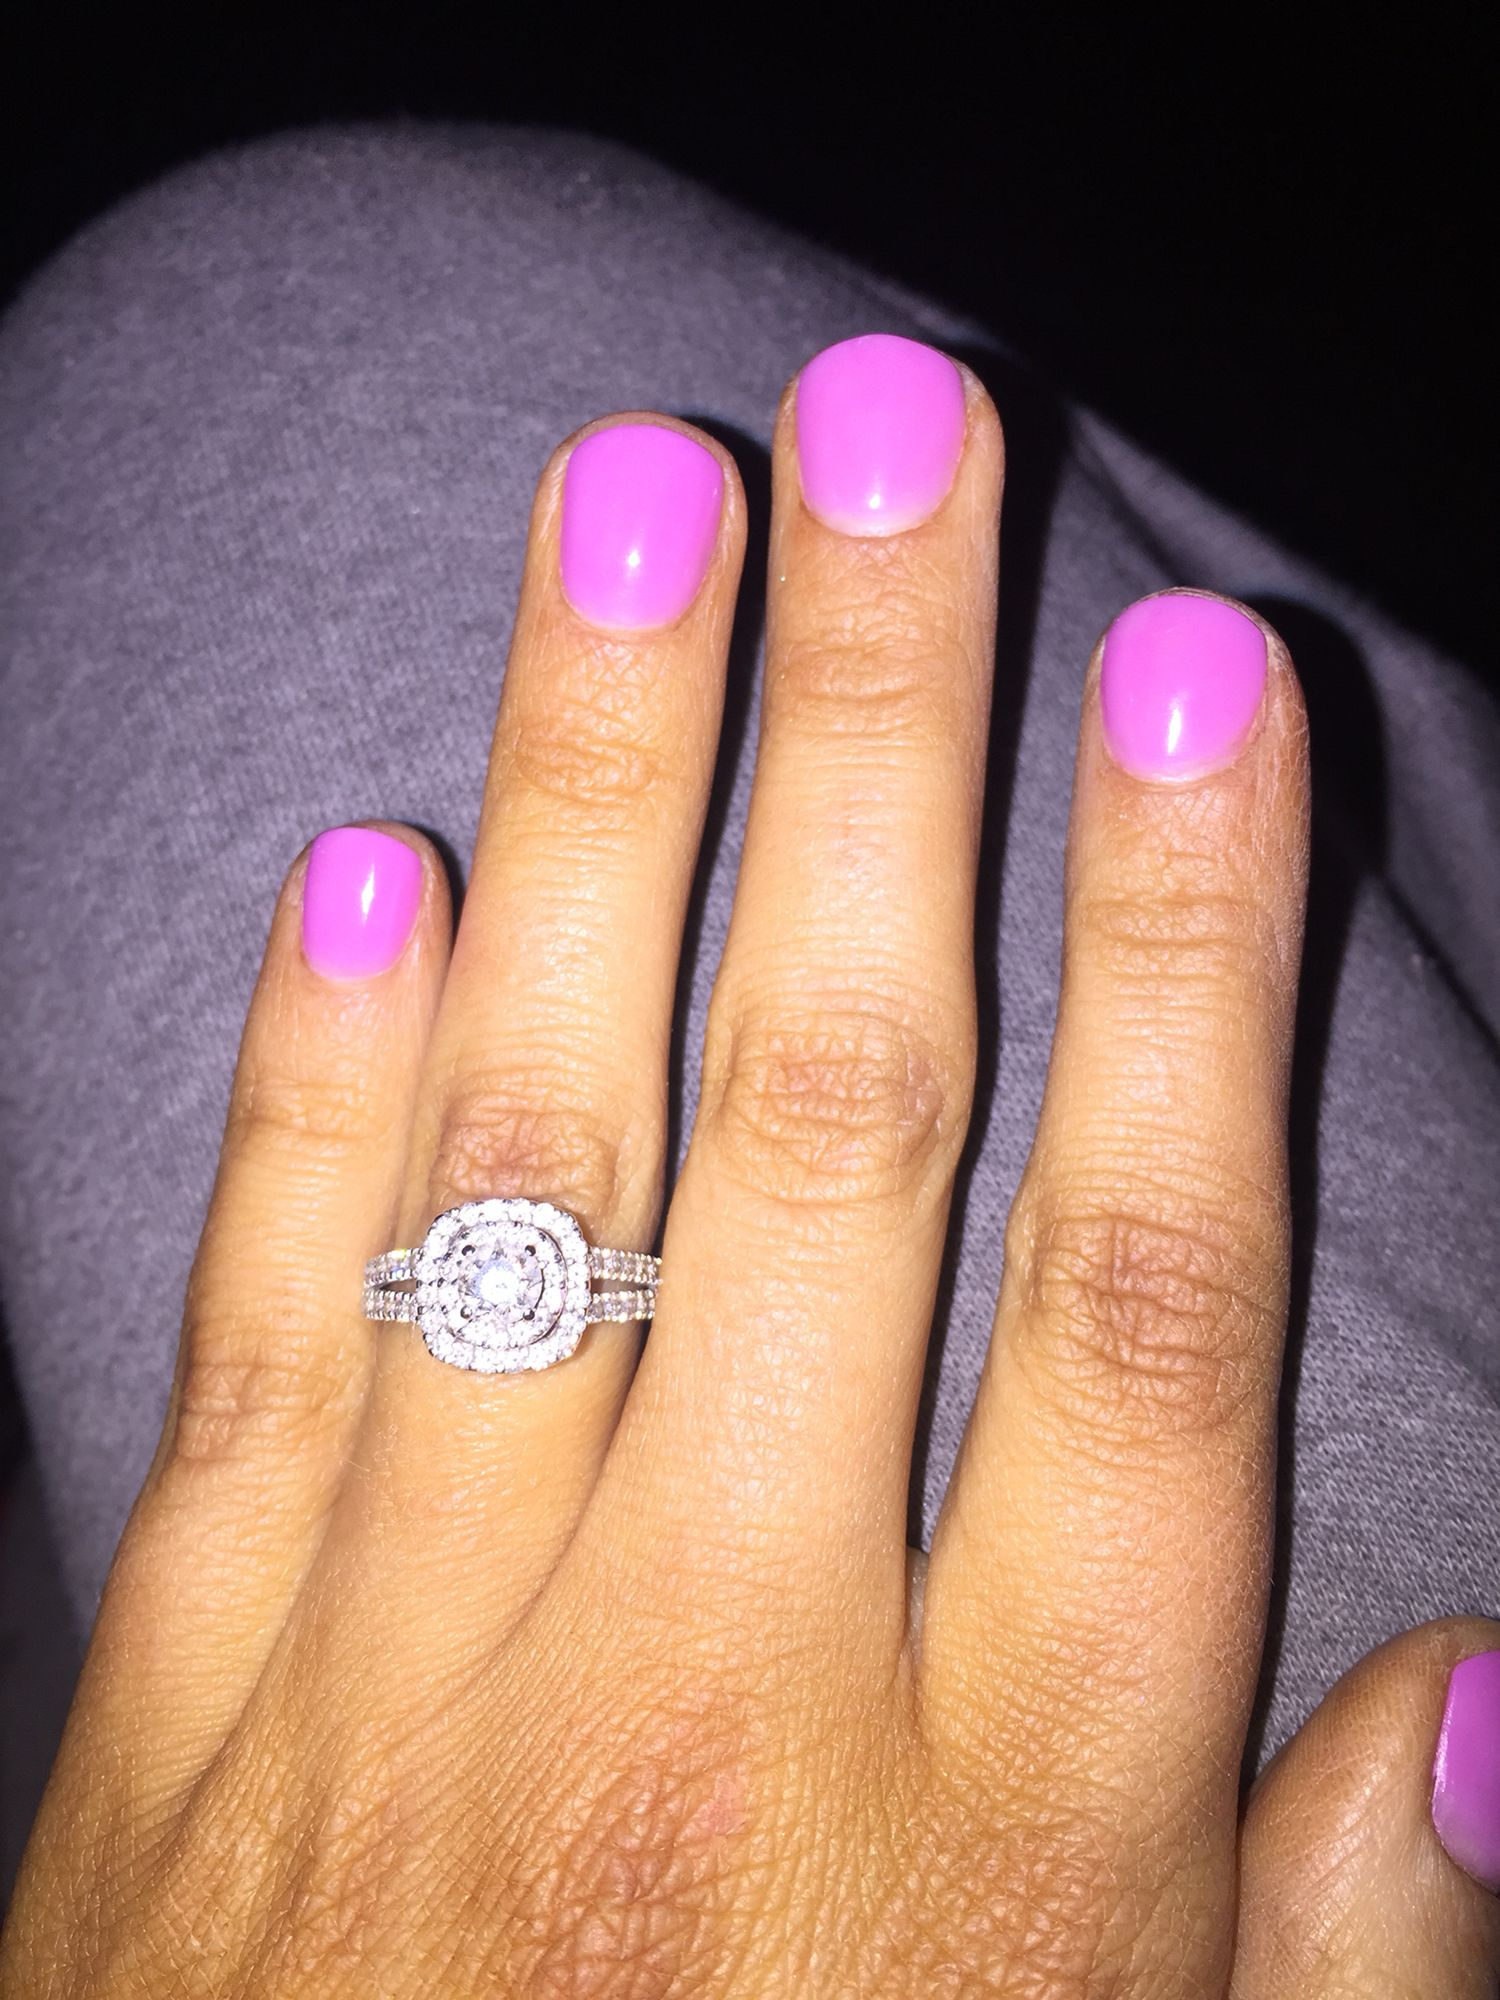 Nexgen Nails French Manicure: NexGen Nails Is Where It's At! If You've Tried Gel And Can